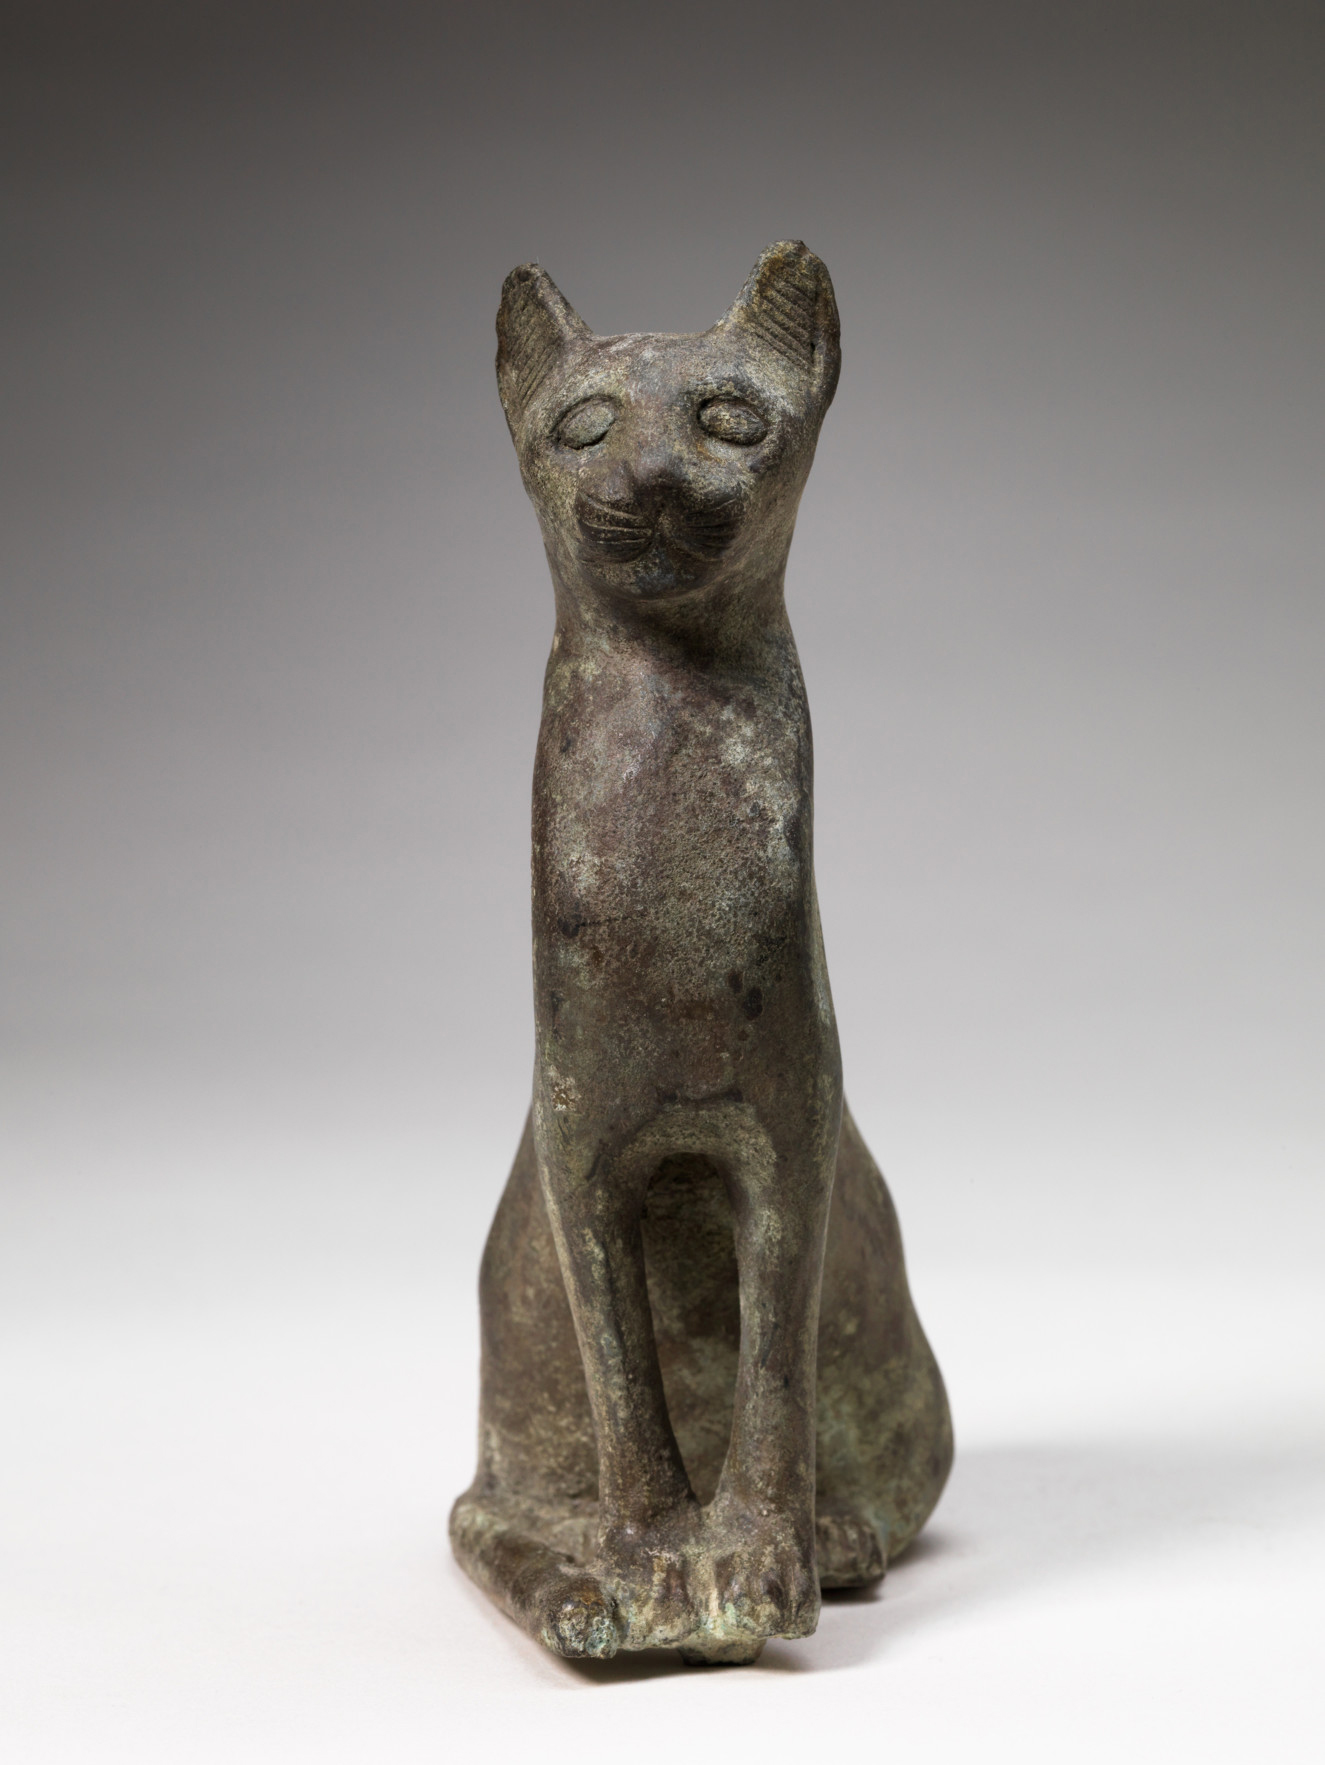 Egyptian, Cat, Greco-Roman Period (332 BC-32 AD). Bronze, 5 3/16 x 1 15/16 x 3 5/16 in. Gift of the son and daughters of Charles Bolles-Rogers, Class of 1907: Frederick Van D. Rogers, Mary Rogers Savage, and Nancy Rogers Pierson, 75.43.18.